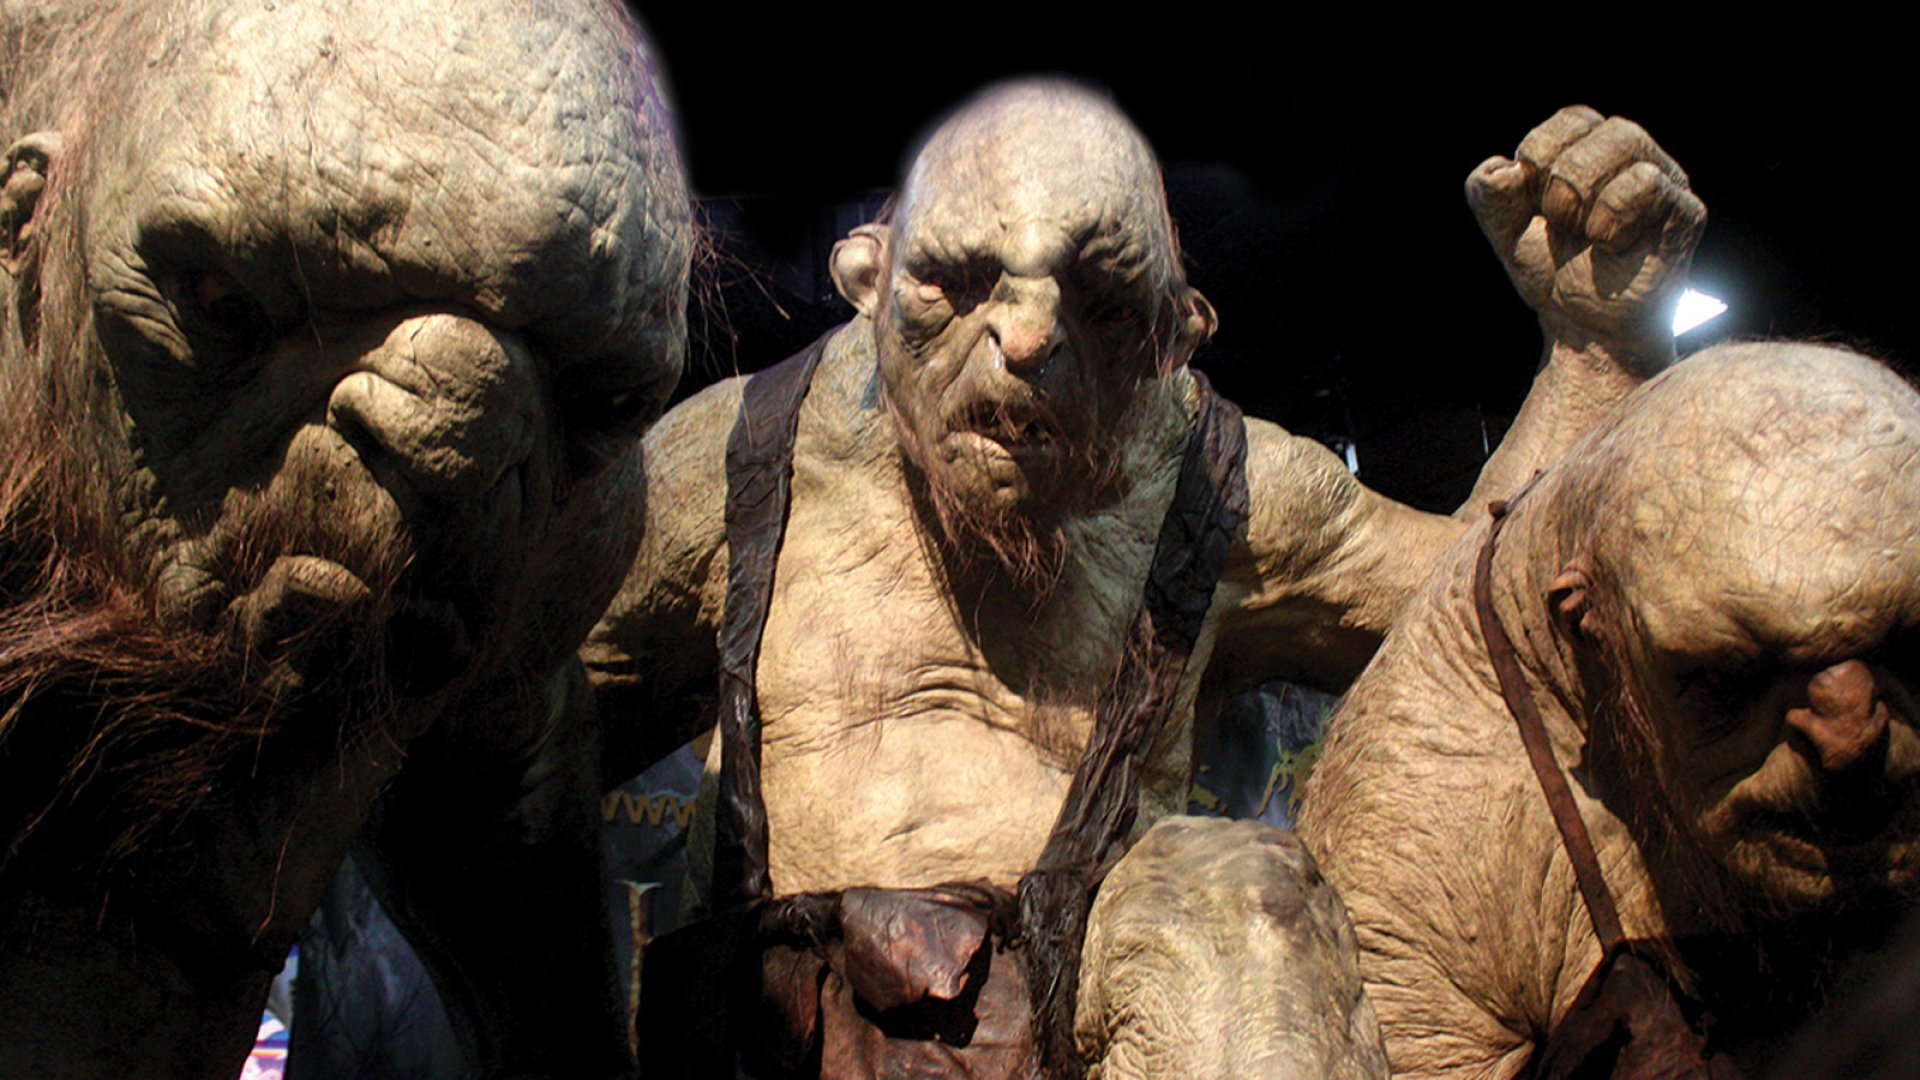 Legal Research Site Names 2,000 Patent Trolls